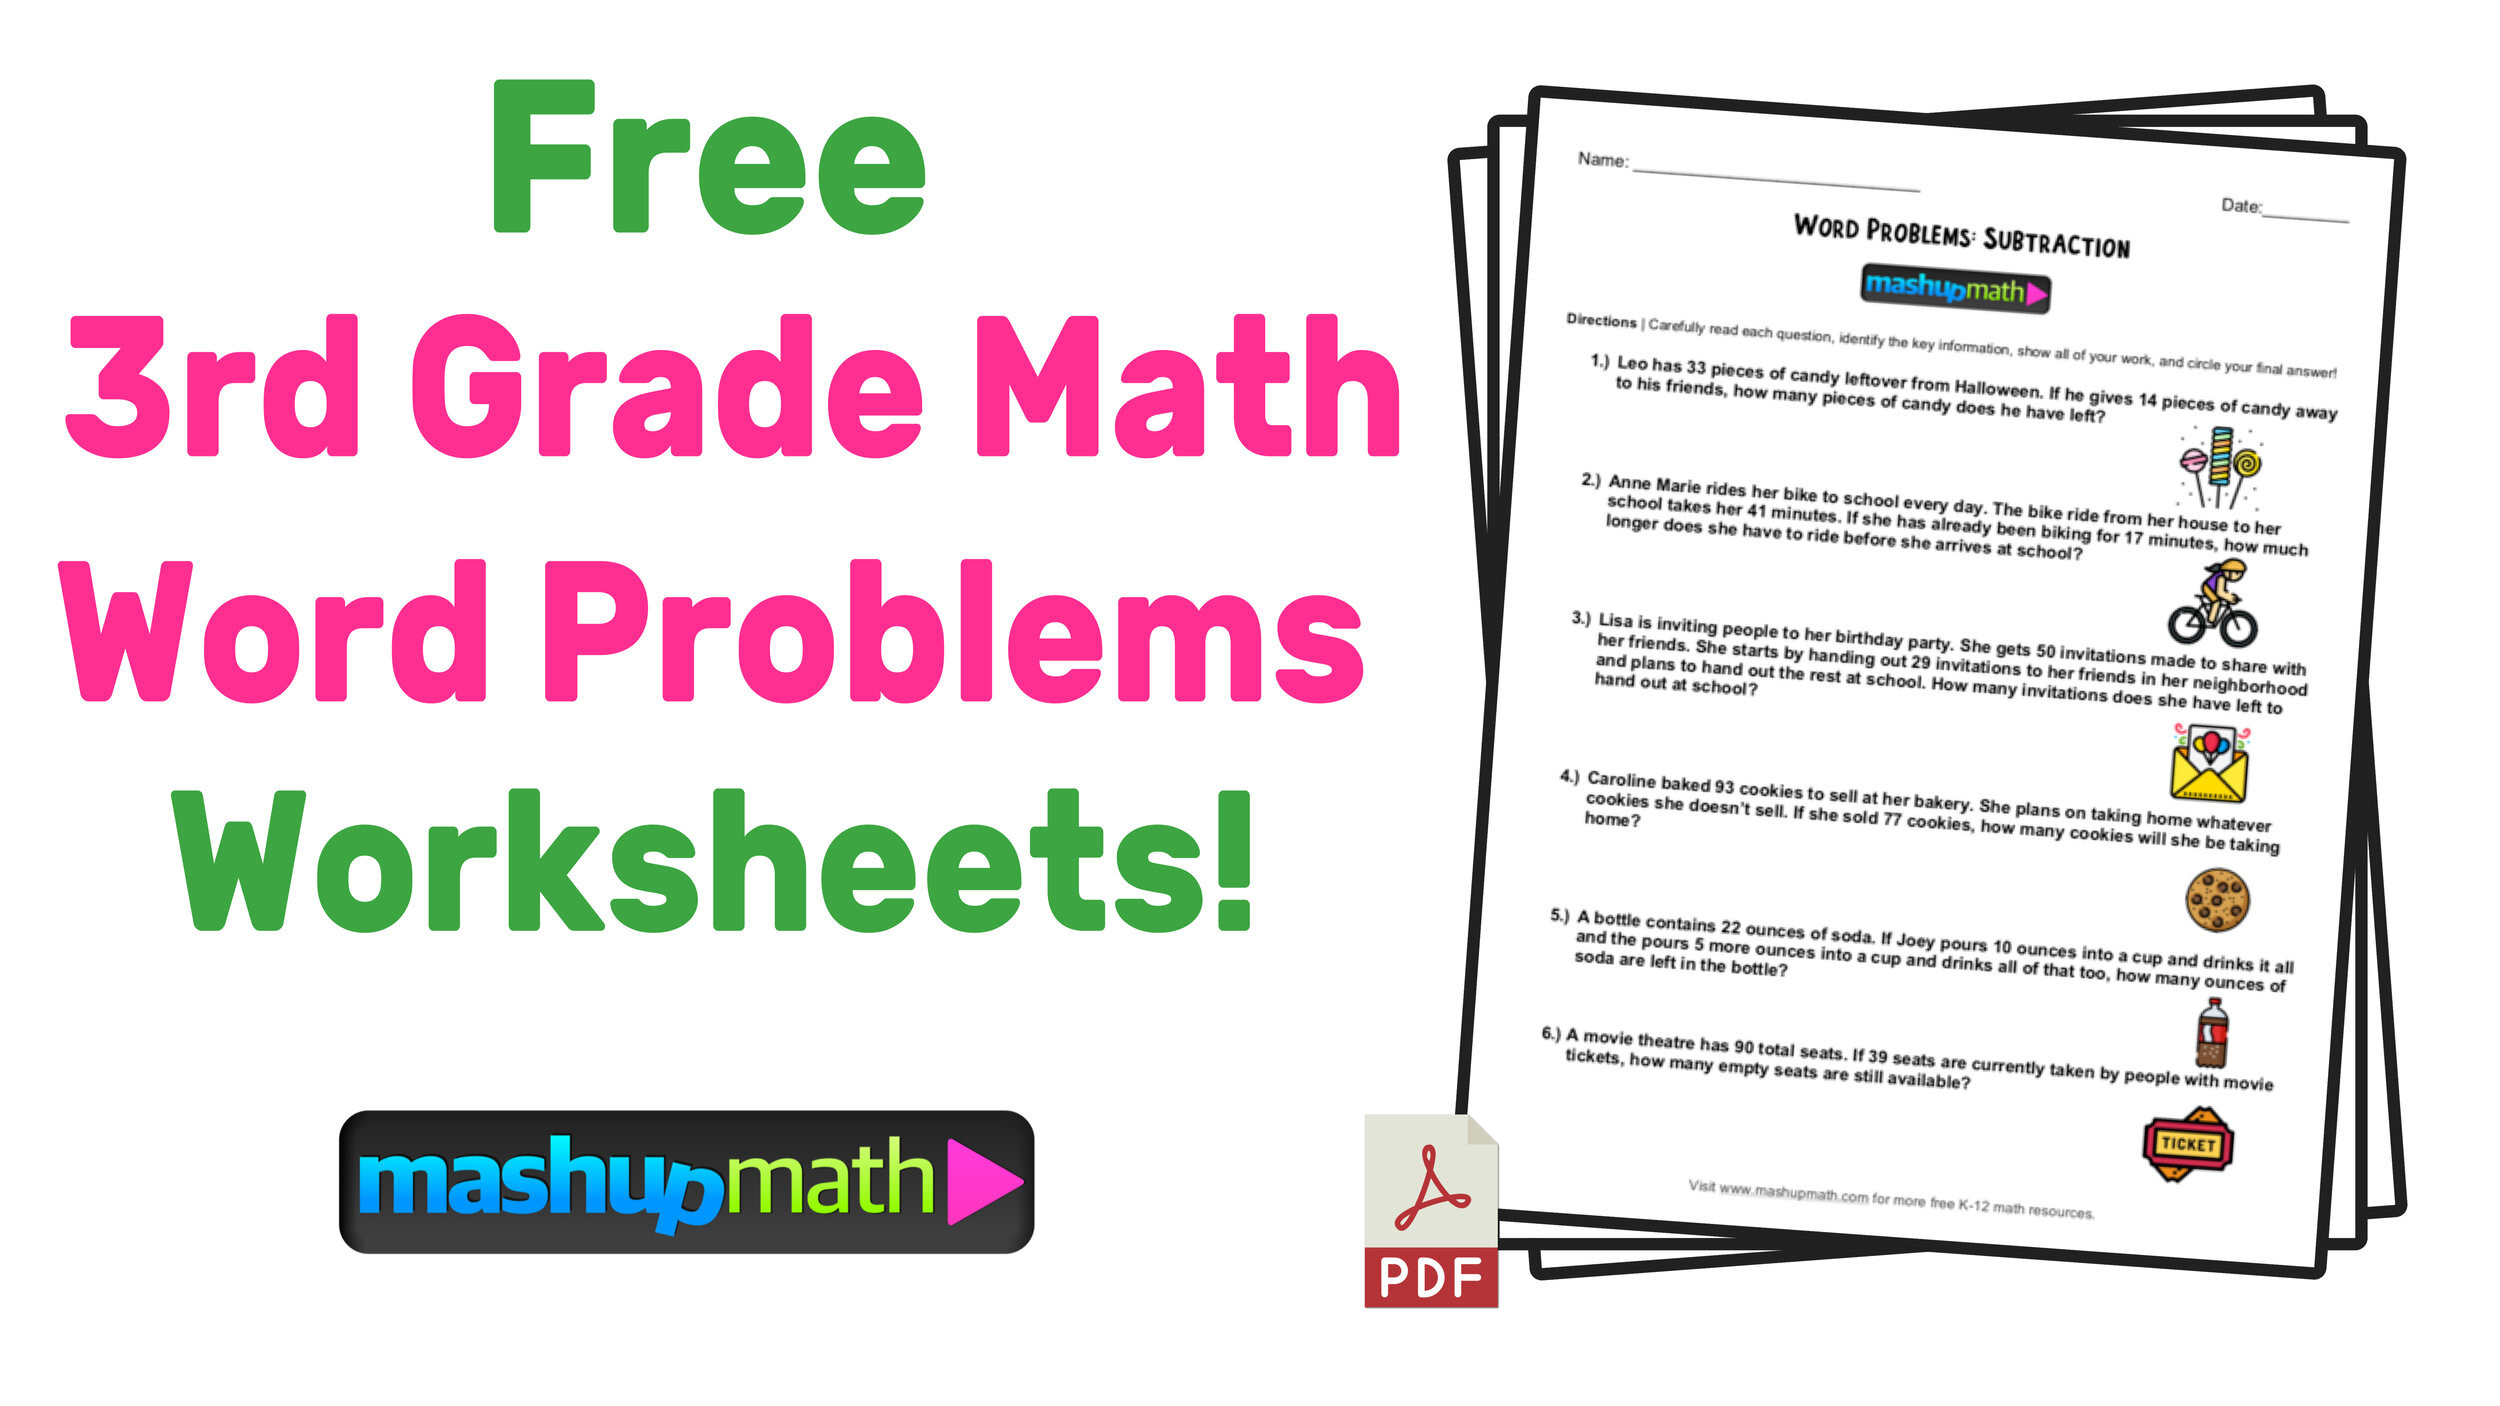 Third Grade Fraction Worksheets 3rd Grade Math Word Problems Free Worksheets with Answers